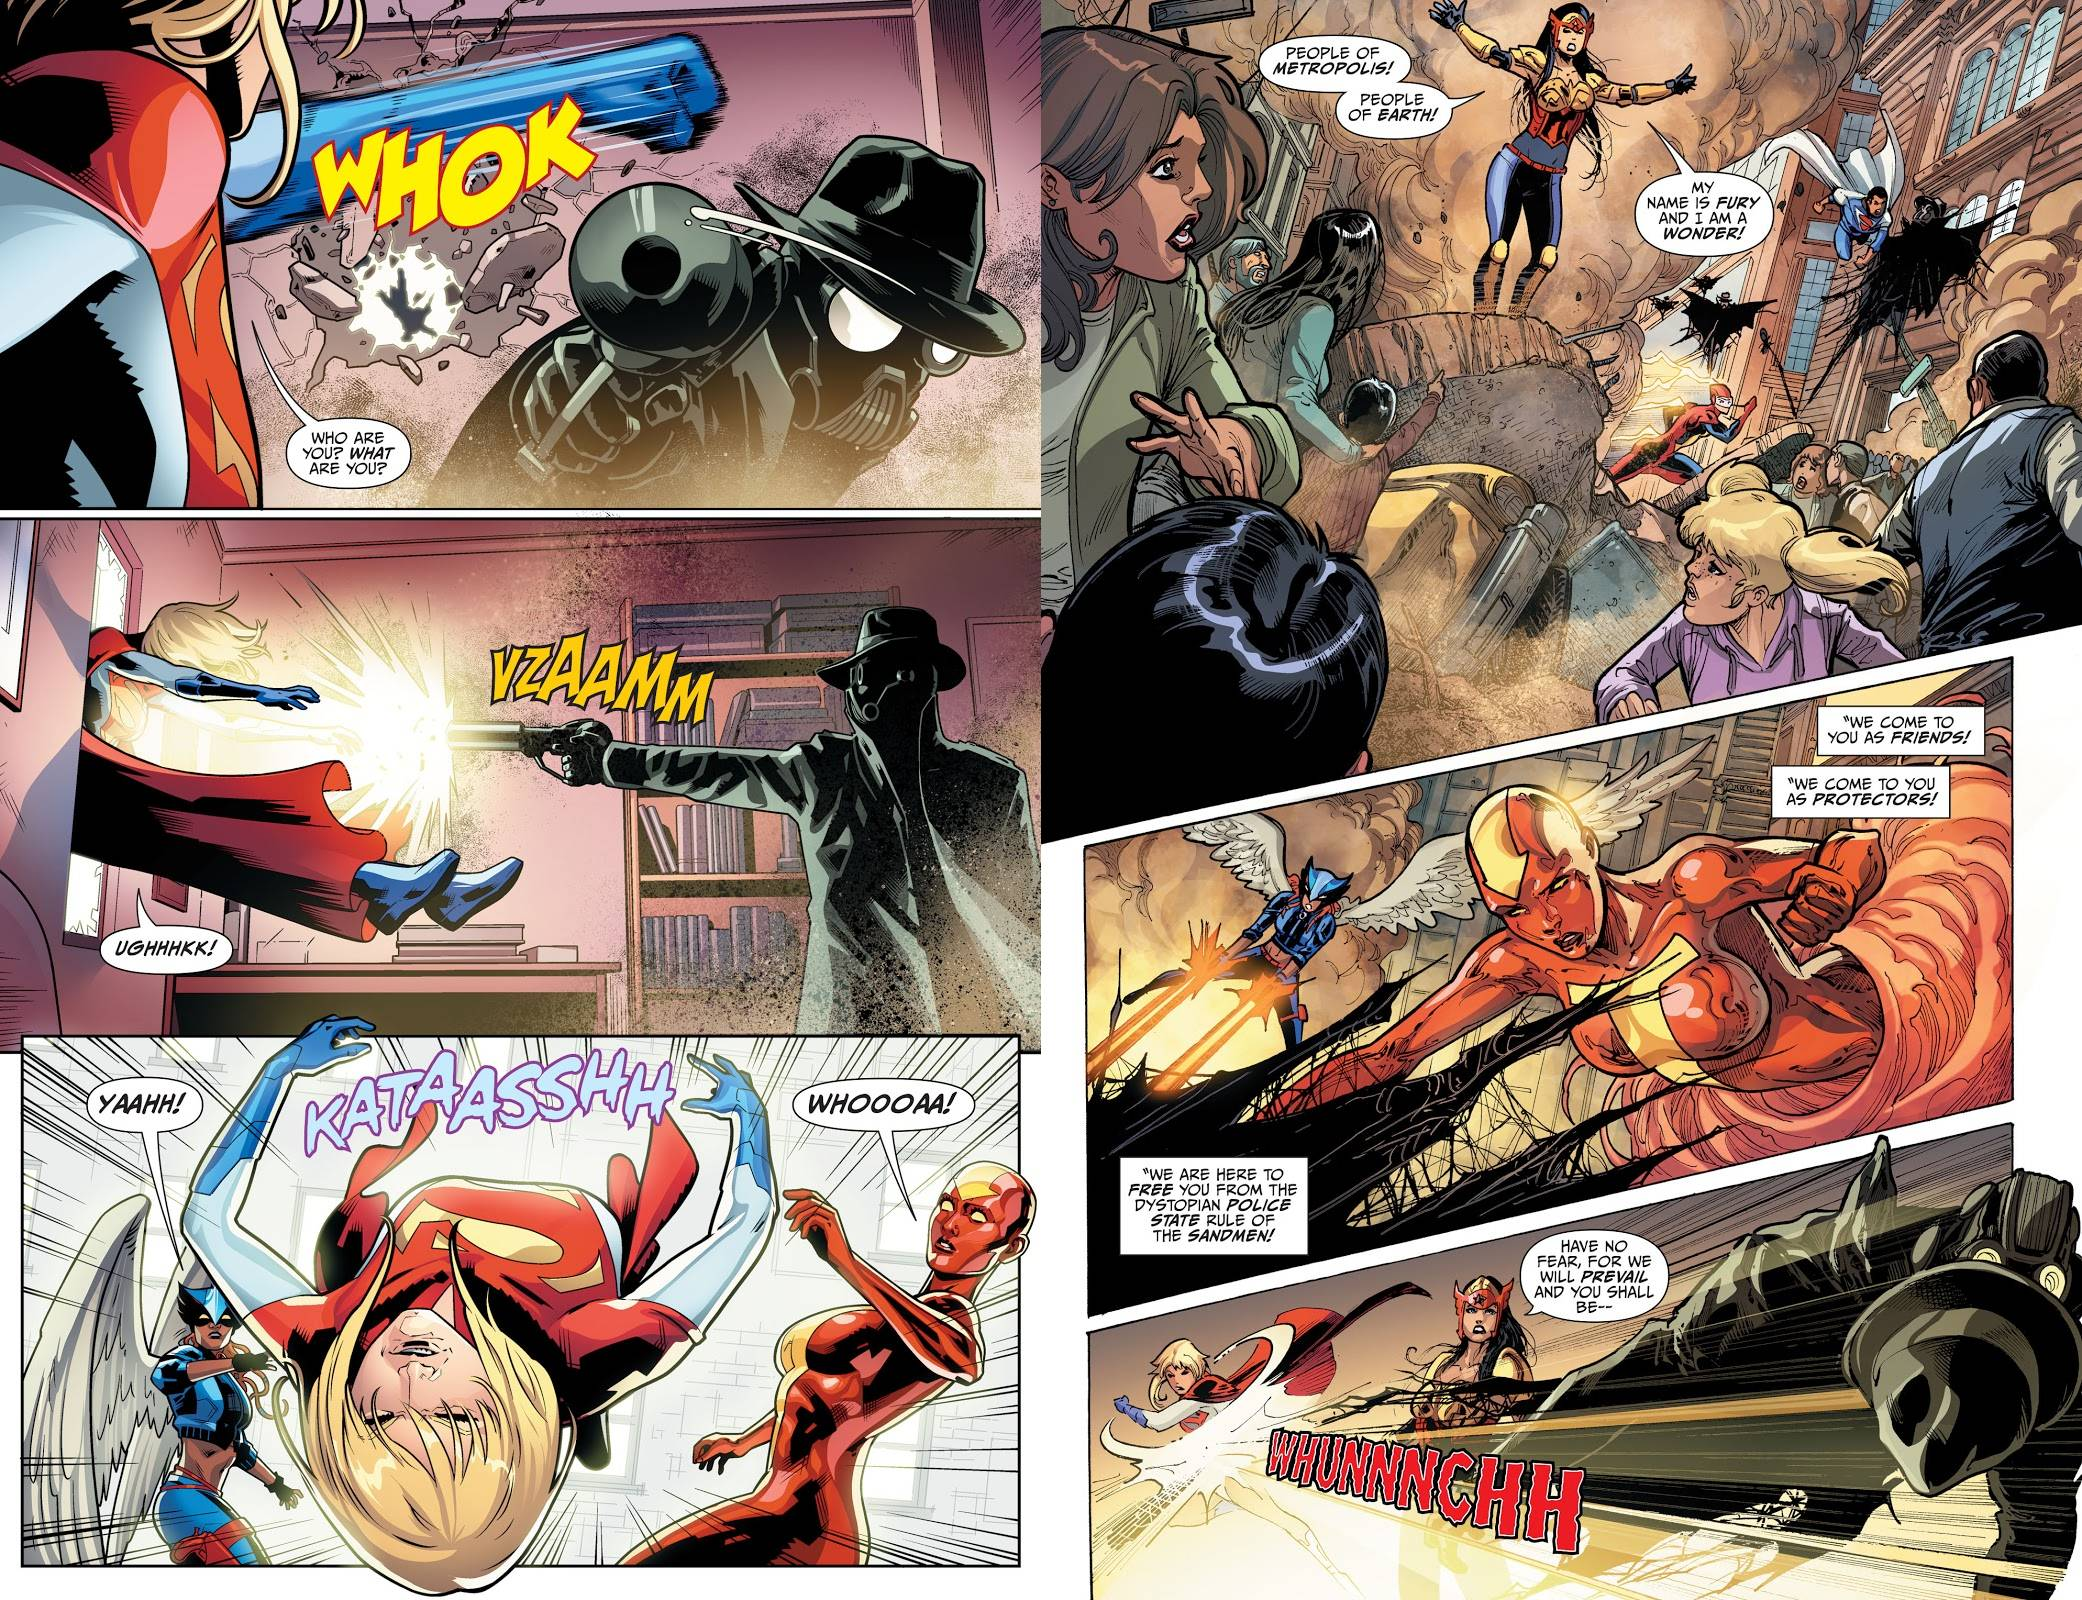 Earth 2 Society V4 Life After Death review